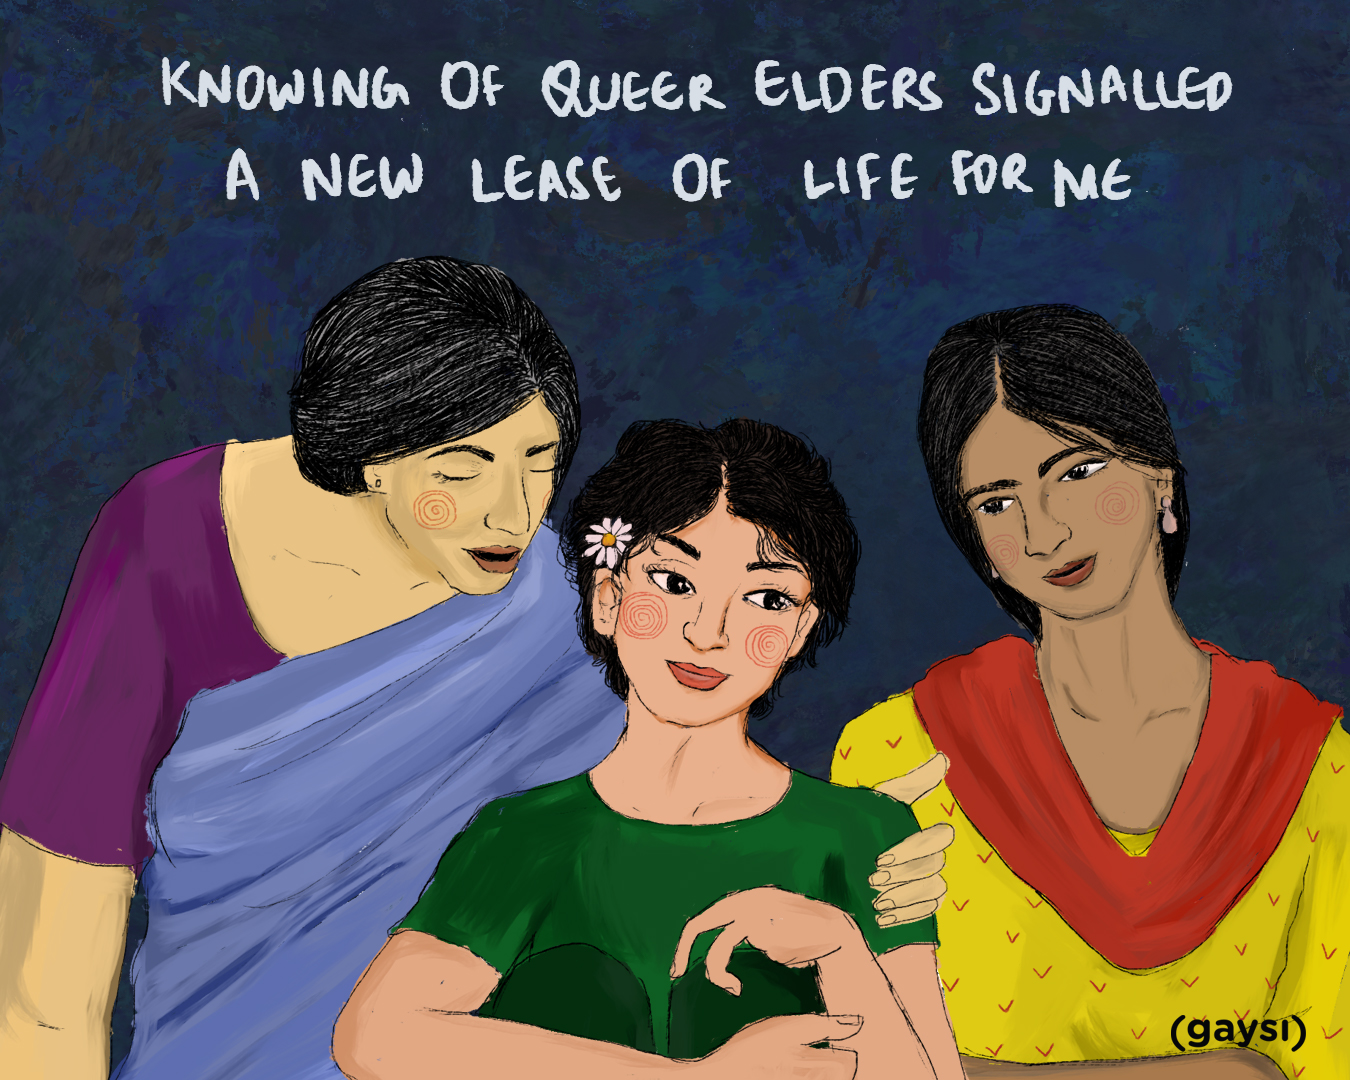 On The Importance Of Queer Elders